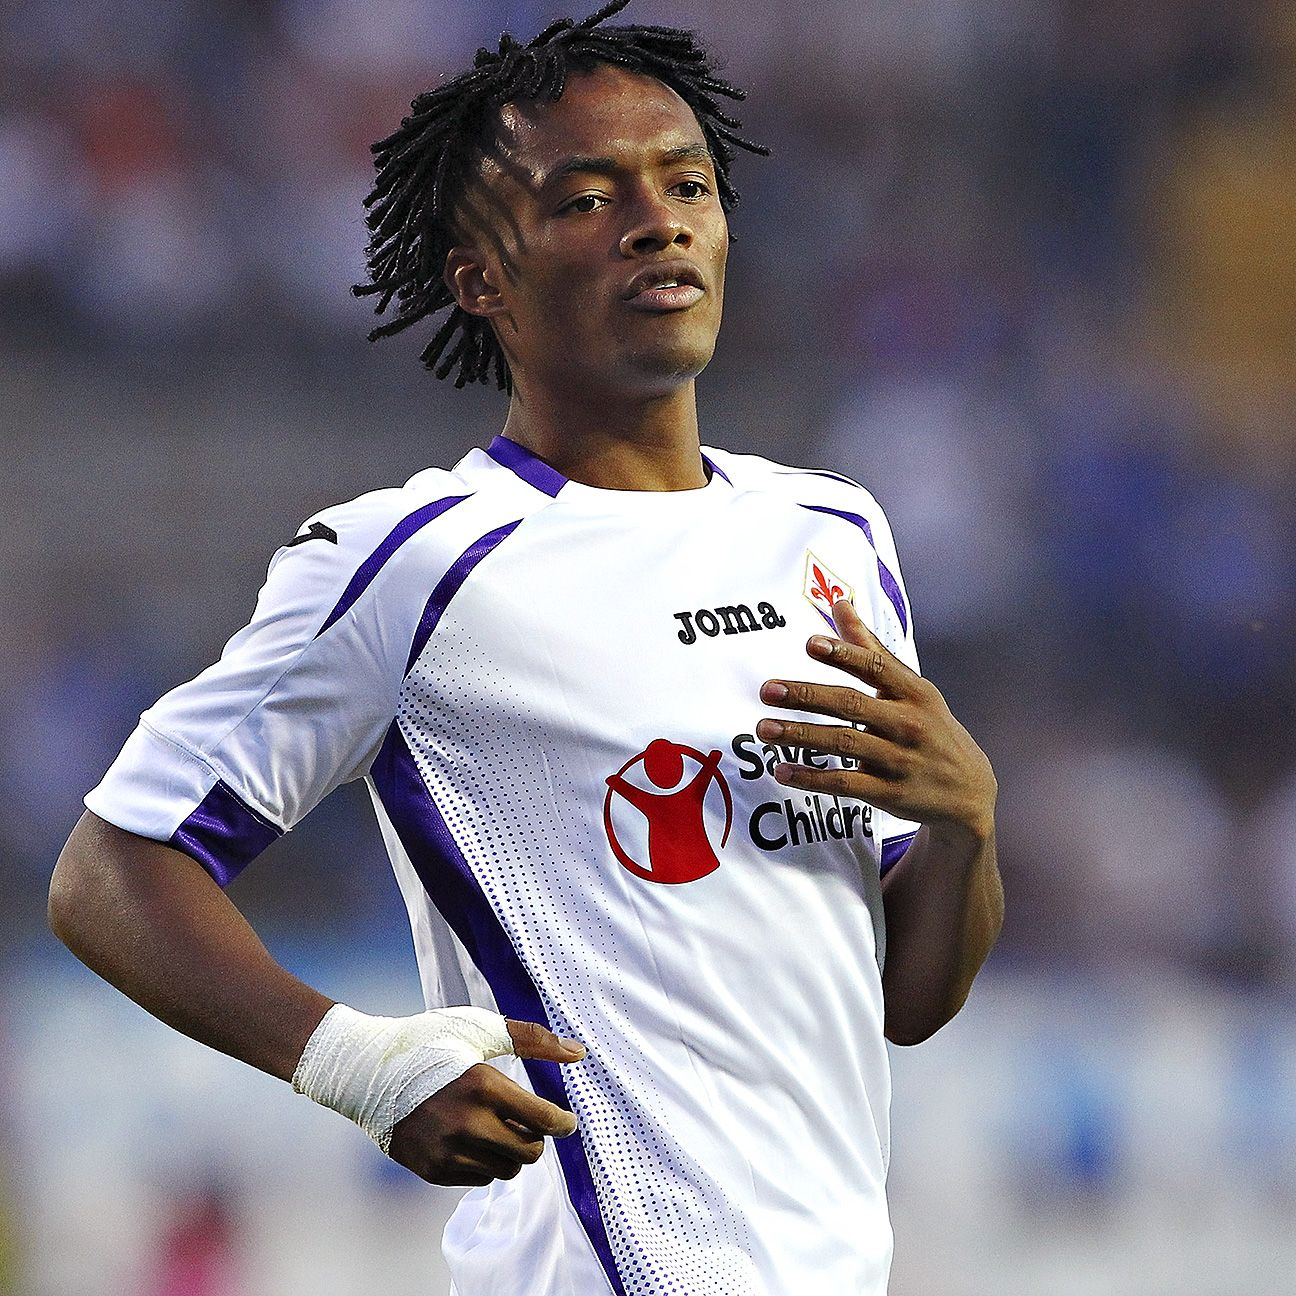 Did Chelsea make the right move by acquiring winger Juan Cuadrado for 23.3 million pounds?